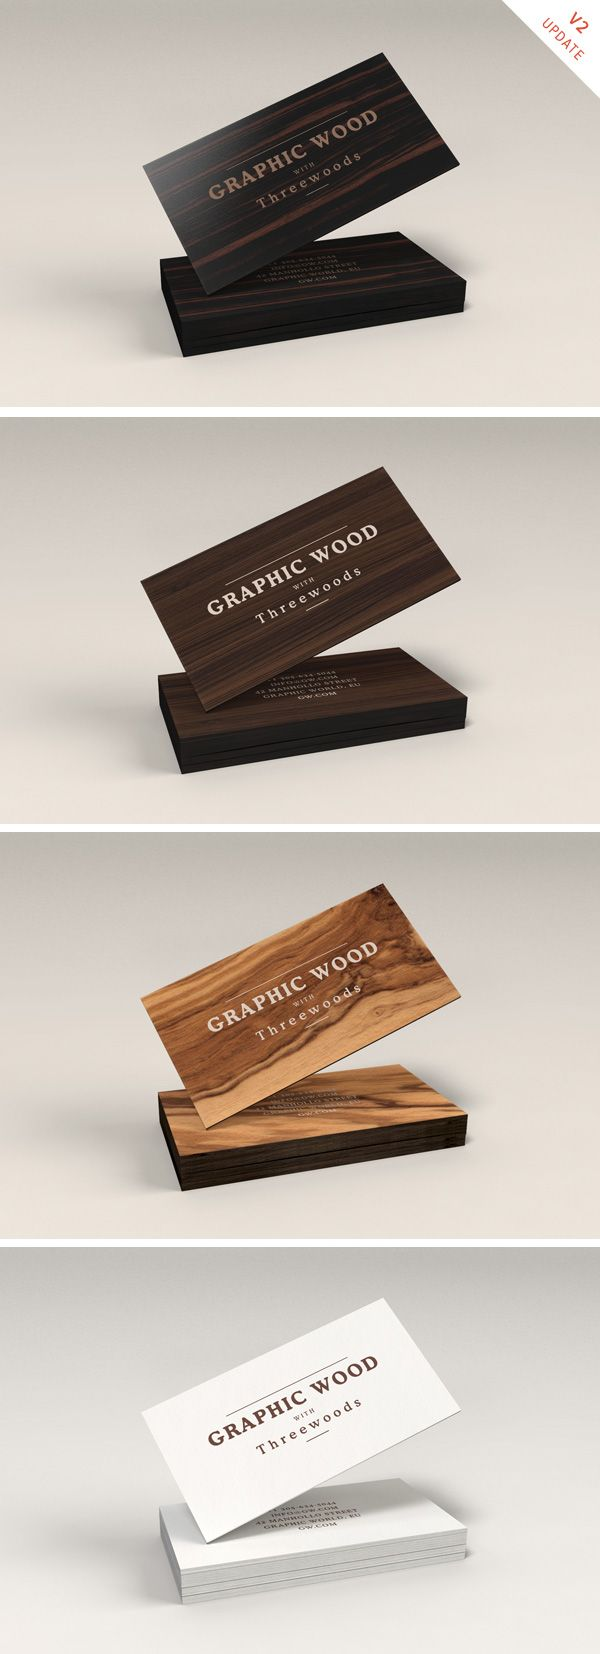 One Step Most Graphic Designers Forget When Creating A Logo Design For Their Wooden Business Card Business Card Mock Up Business Card Logo